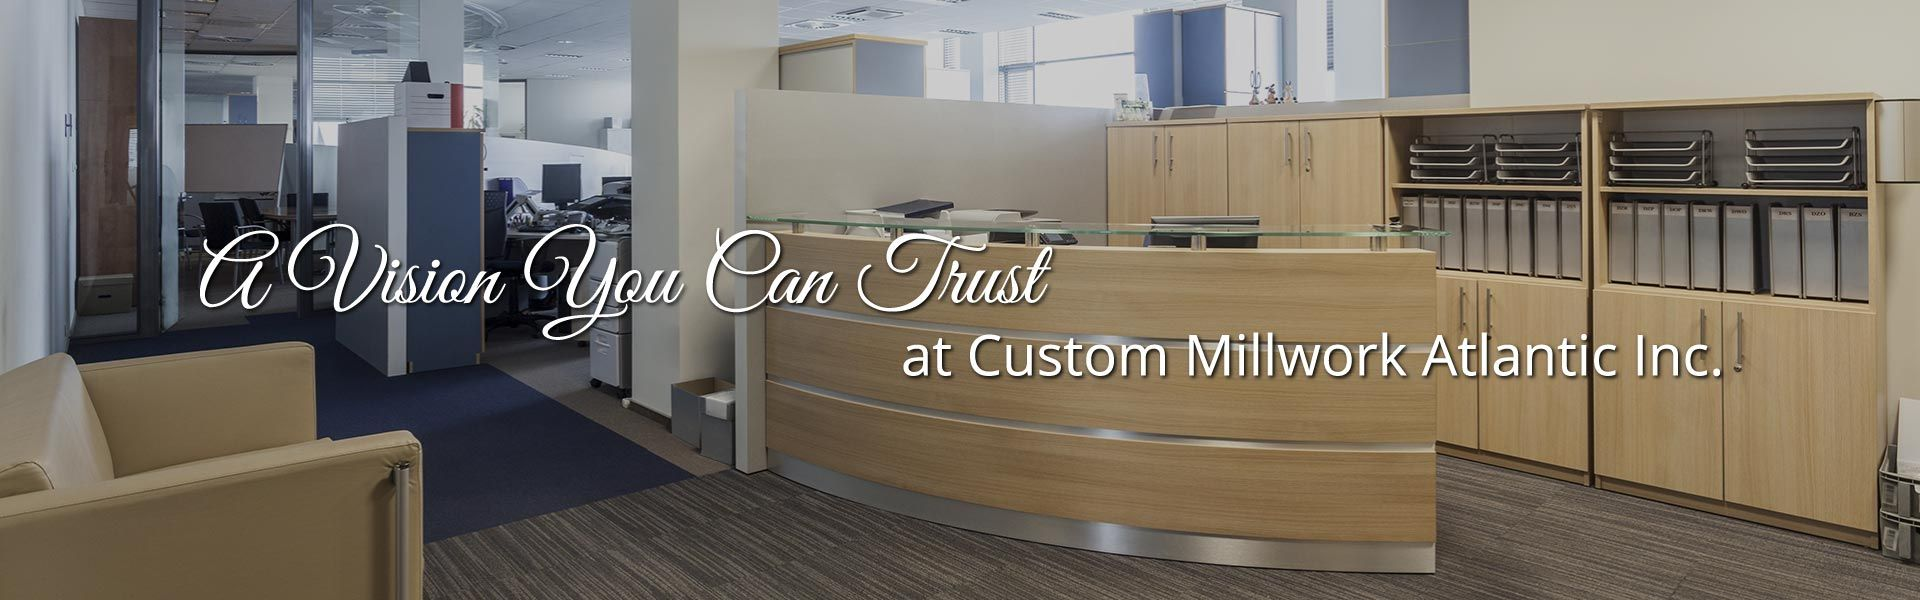 A Vision You Can Trust at Custom Millwork Atlantic Inc. | Office interior